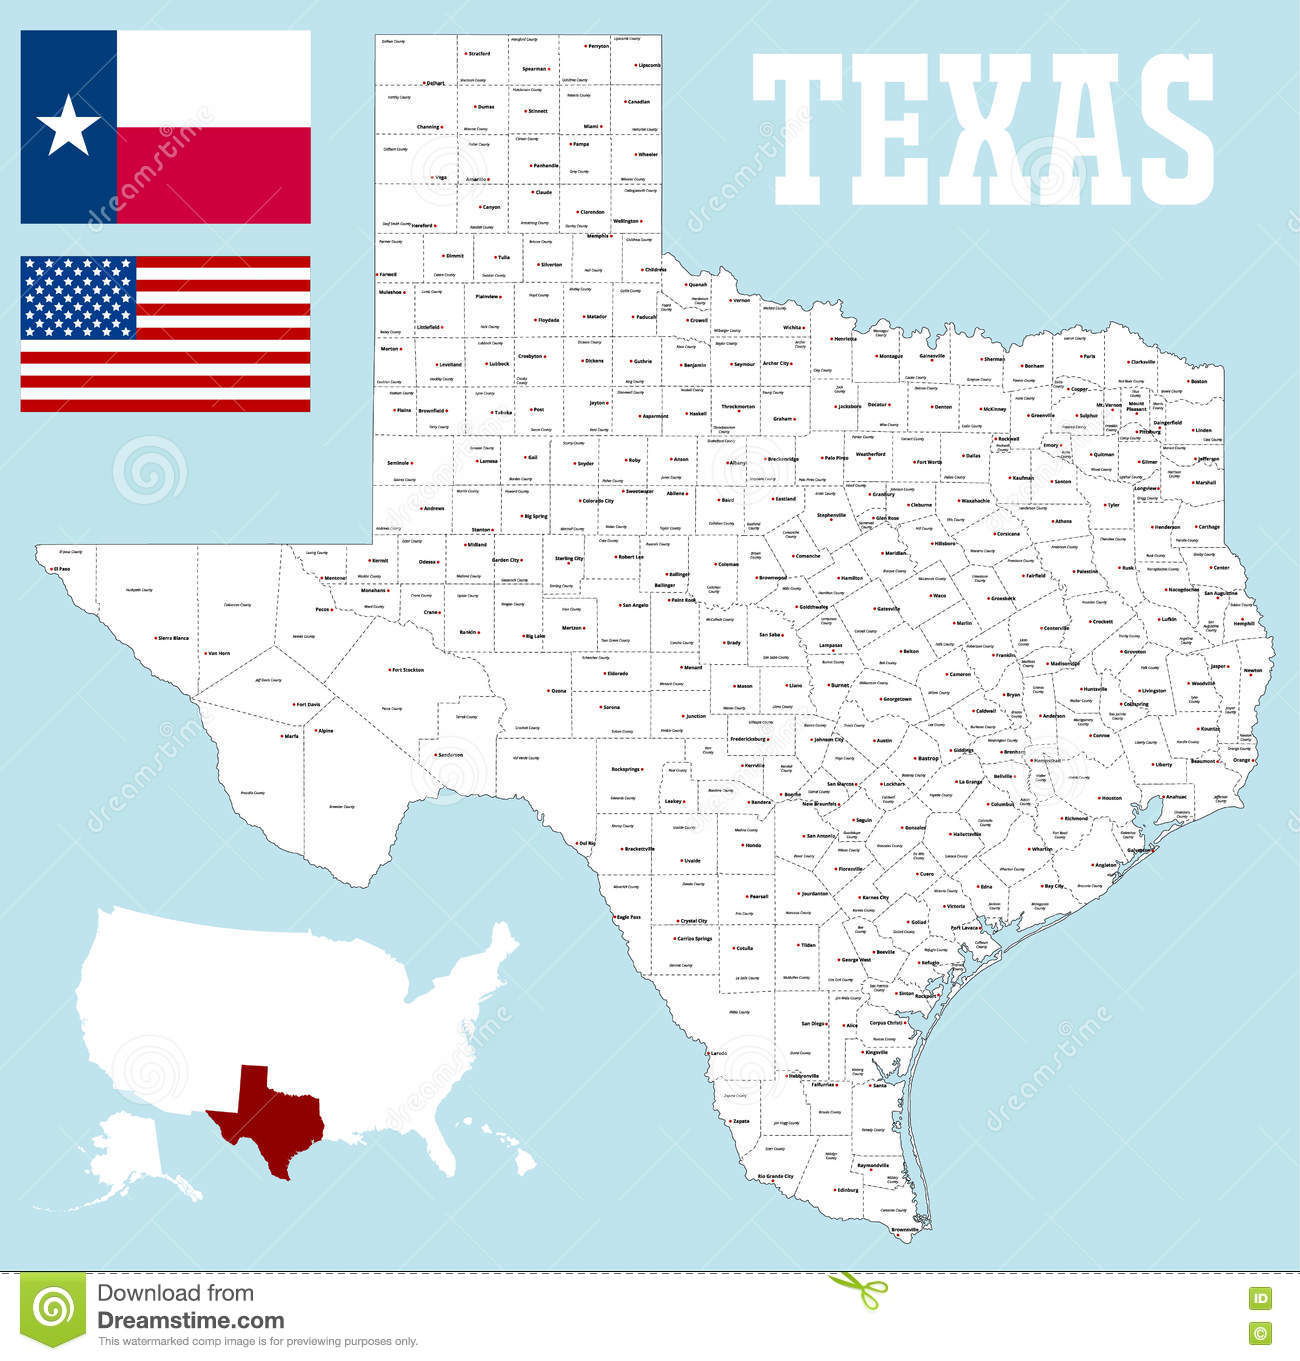 Map Of Texas With Counties.Texas County Map Stock Vector Illustration Of Lubbock 78880493